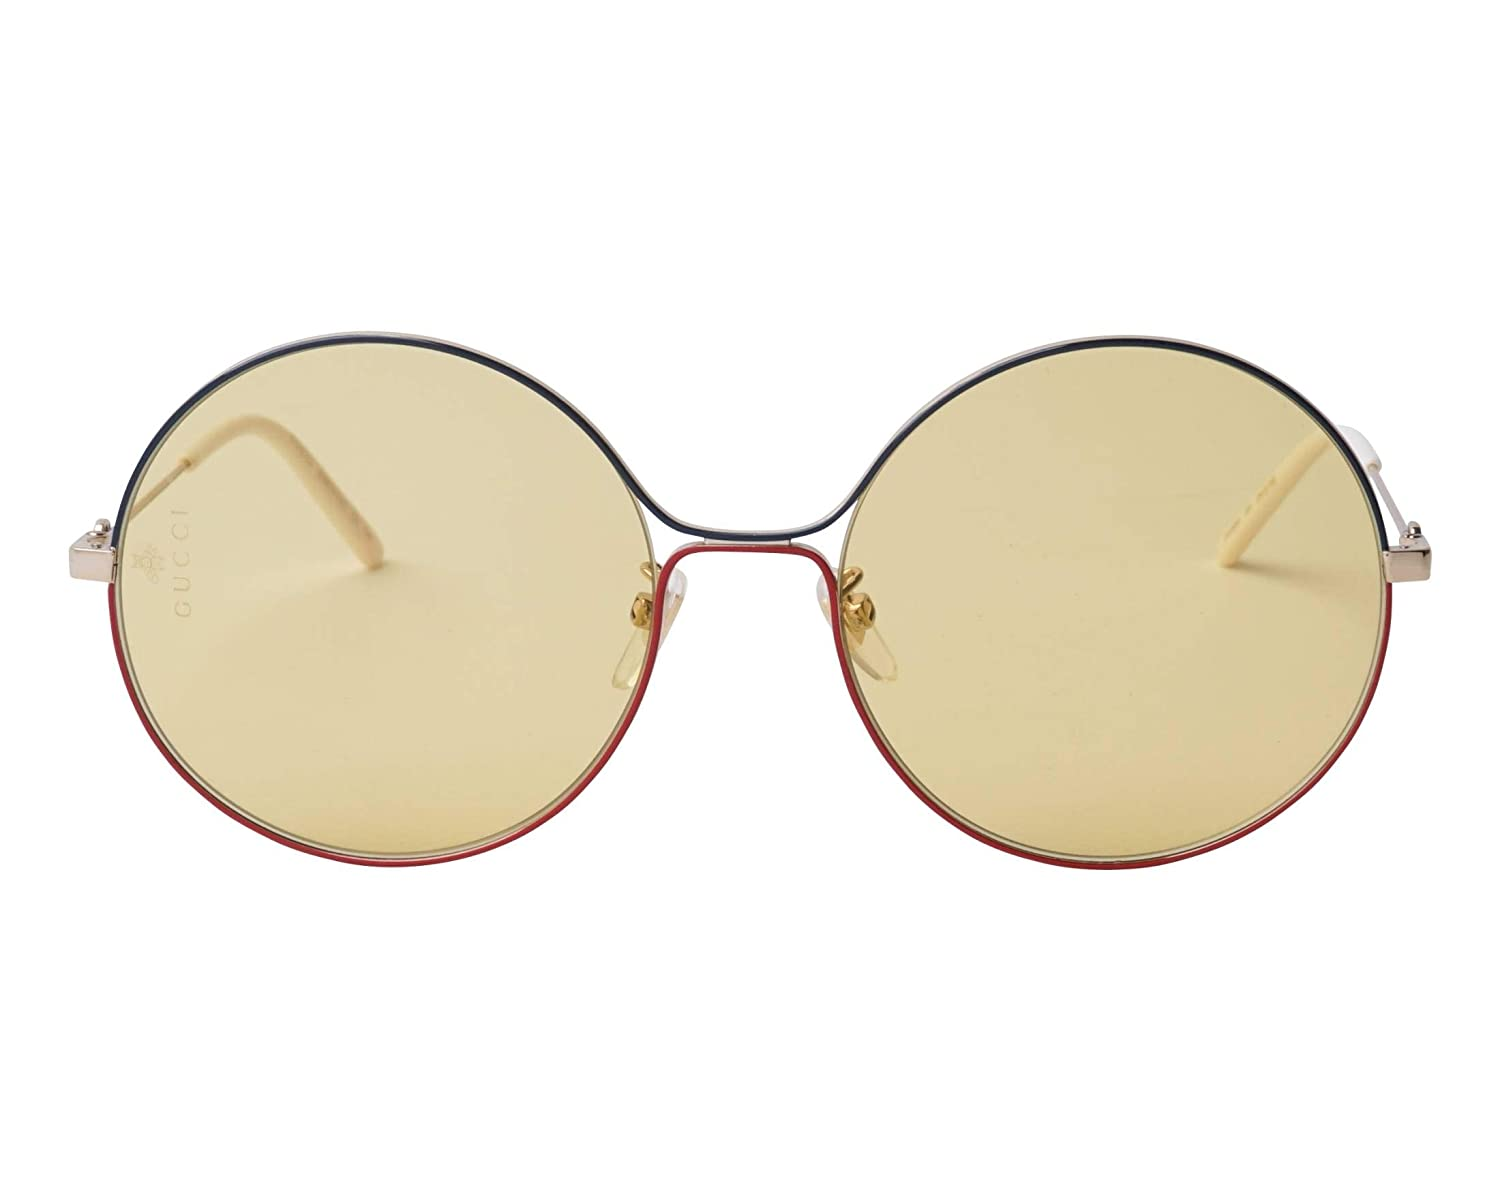 aea760a050e Amazon.com  Gucci GG 0395S 005 Green Red Gold Metal Round Sunglasses Light  Brown Lens  Clothing